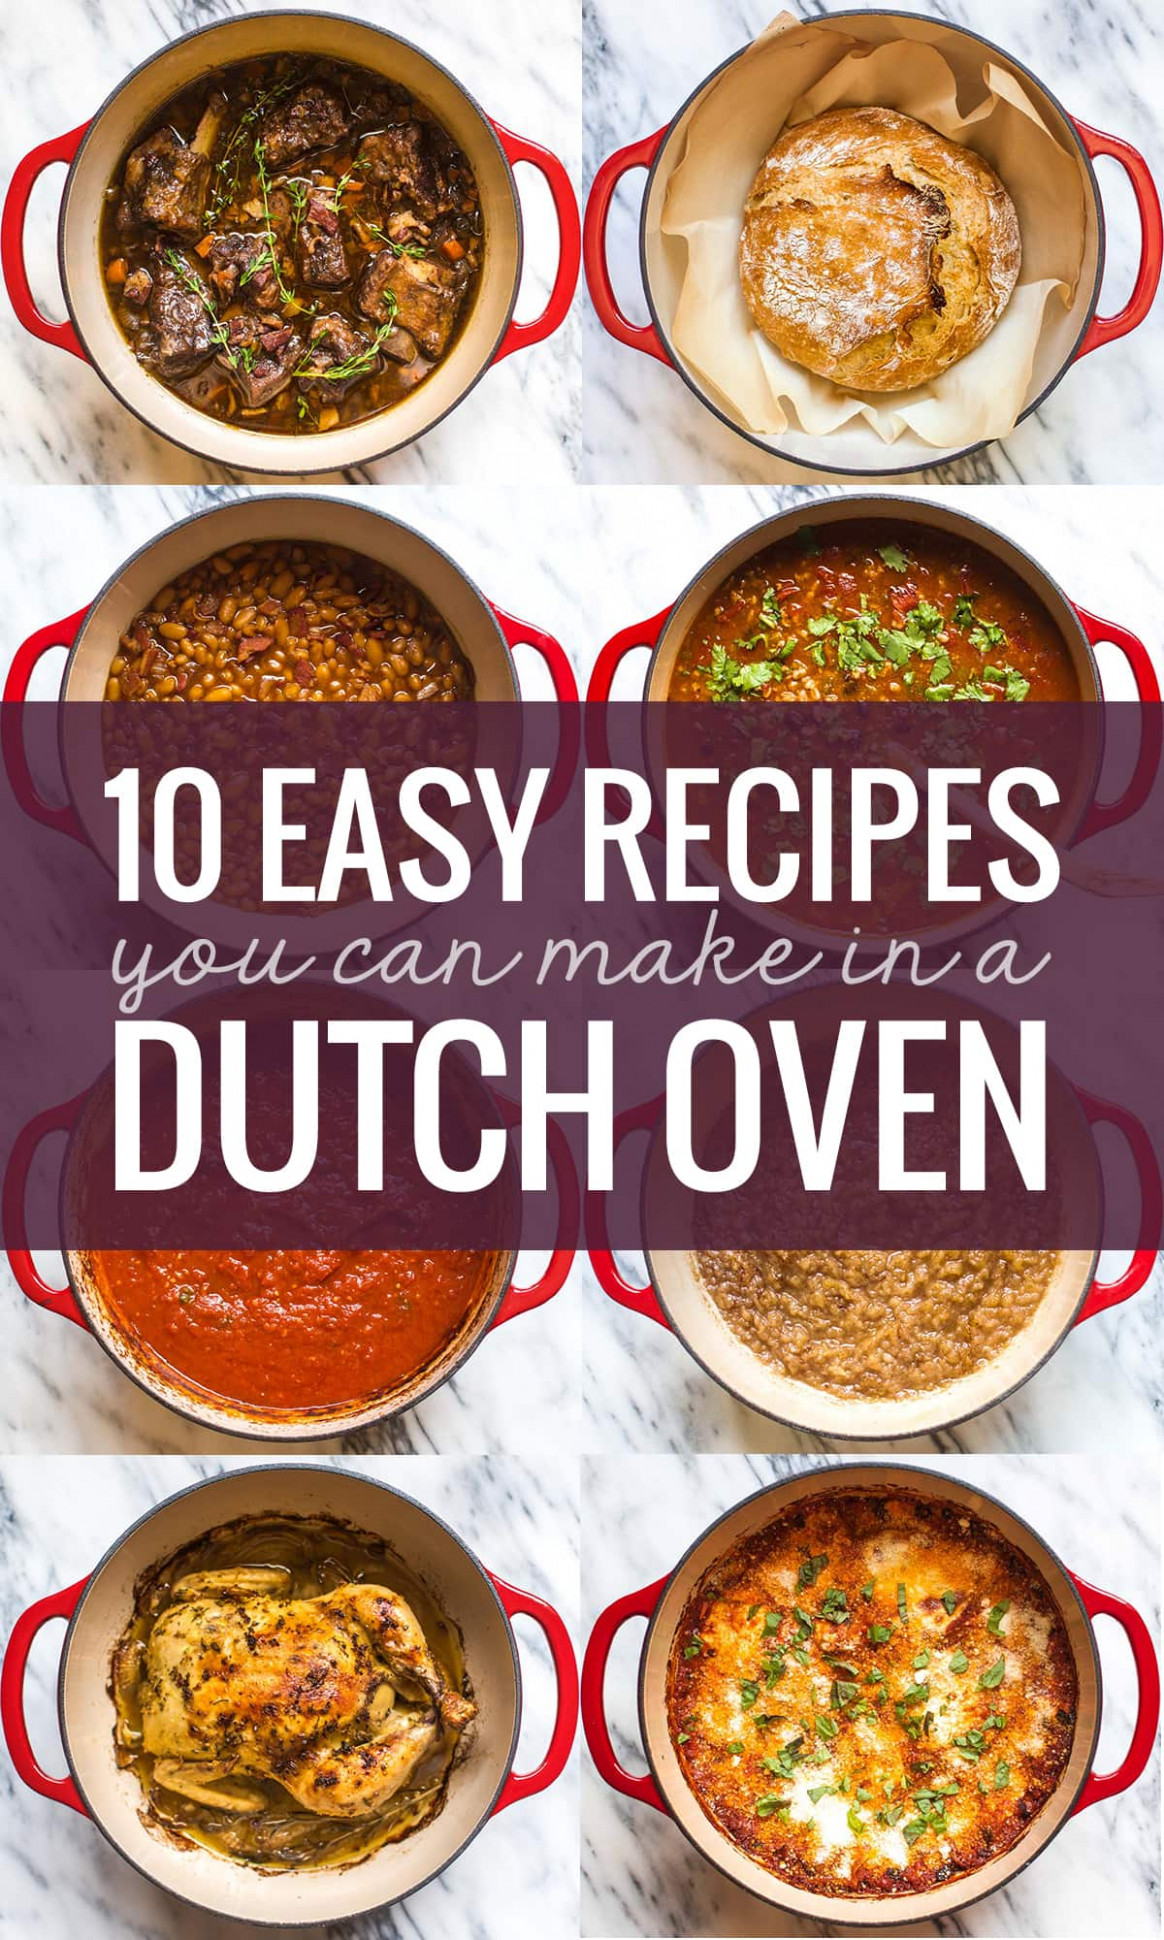 15 Easy Recipes You Can Make In A Dutch Oven - Pinch Of Yum - Quick Bake Recipes Dinner